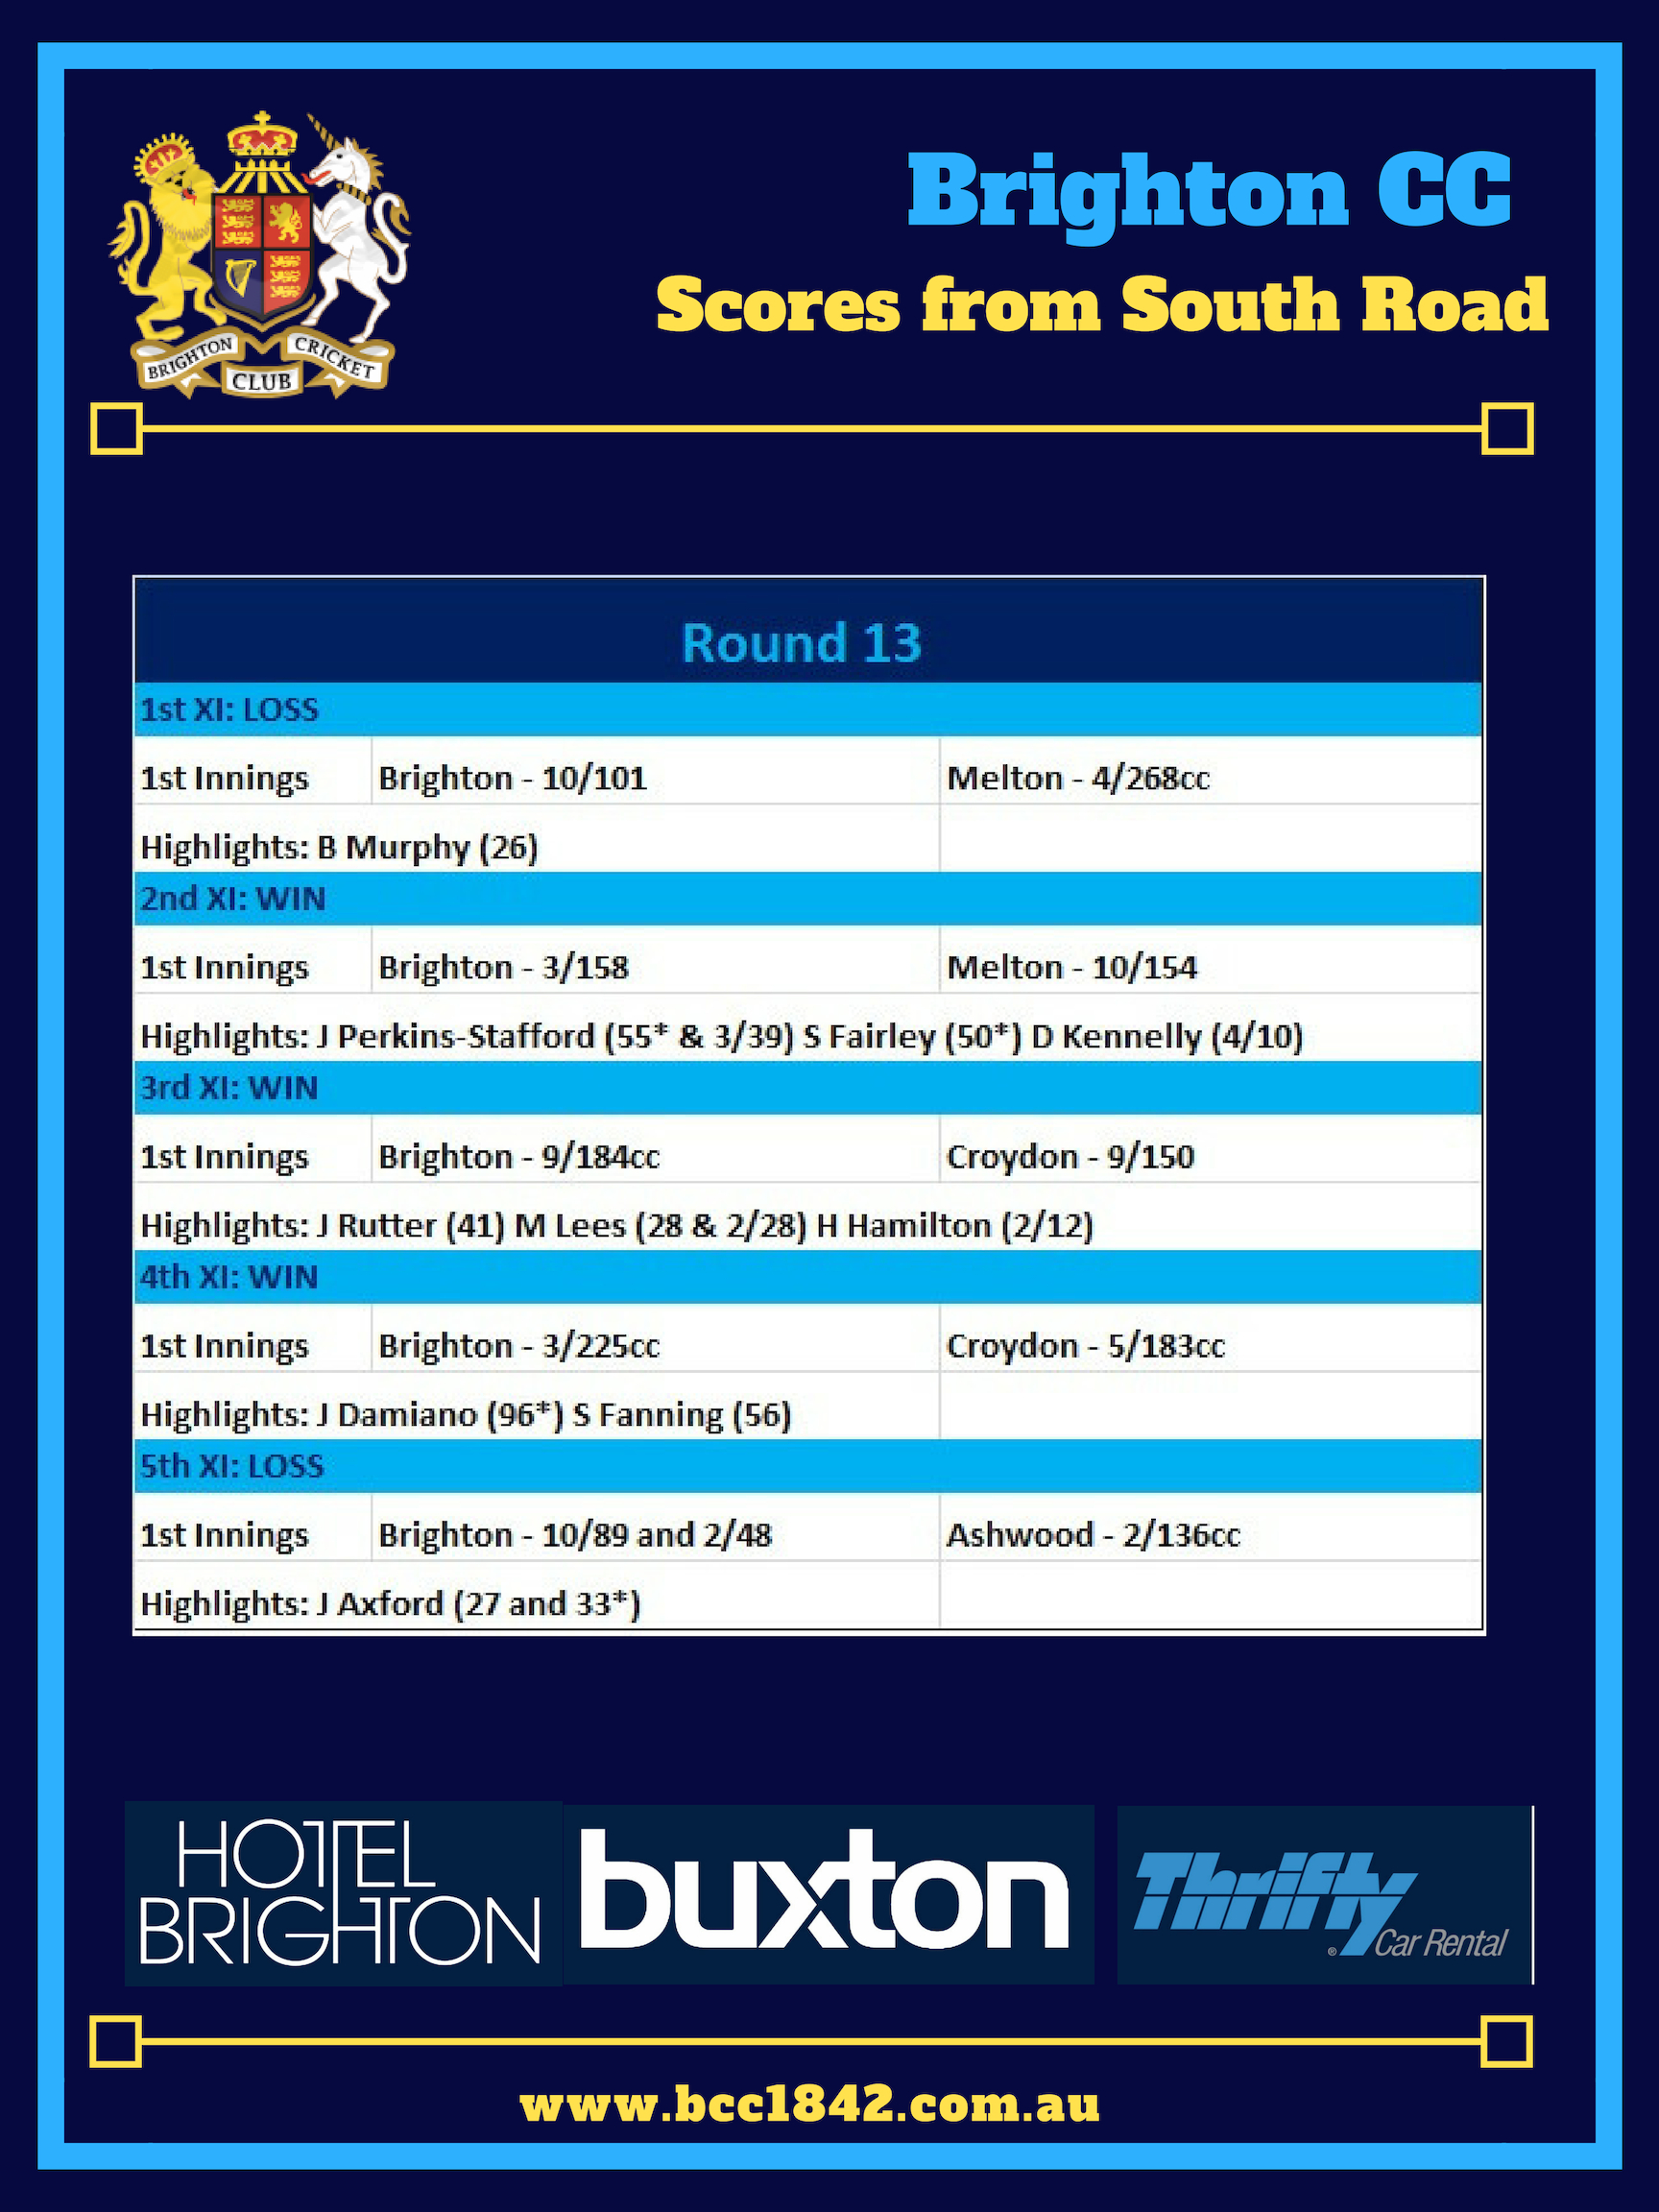 Scores from South Road (11)